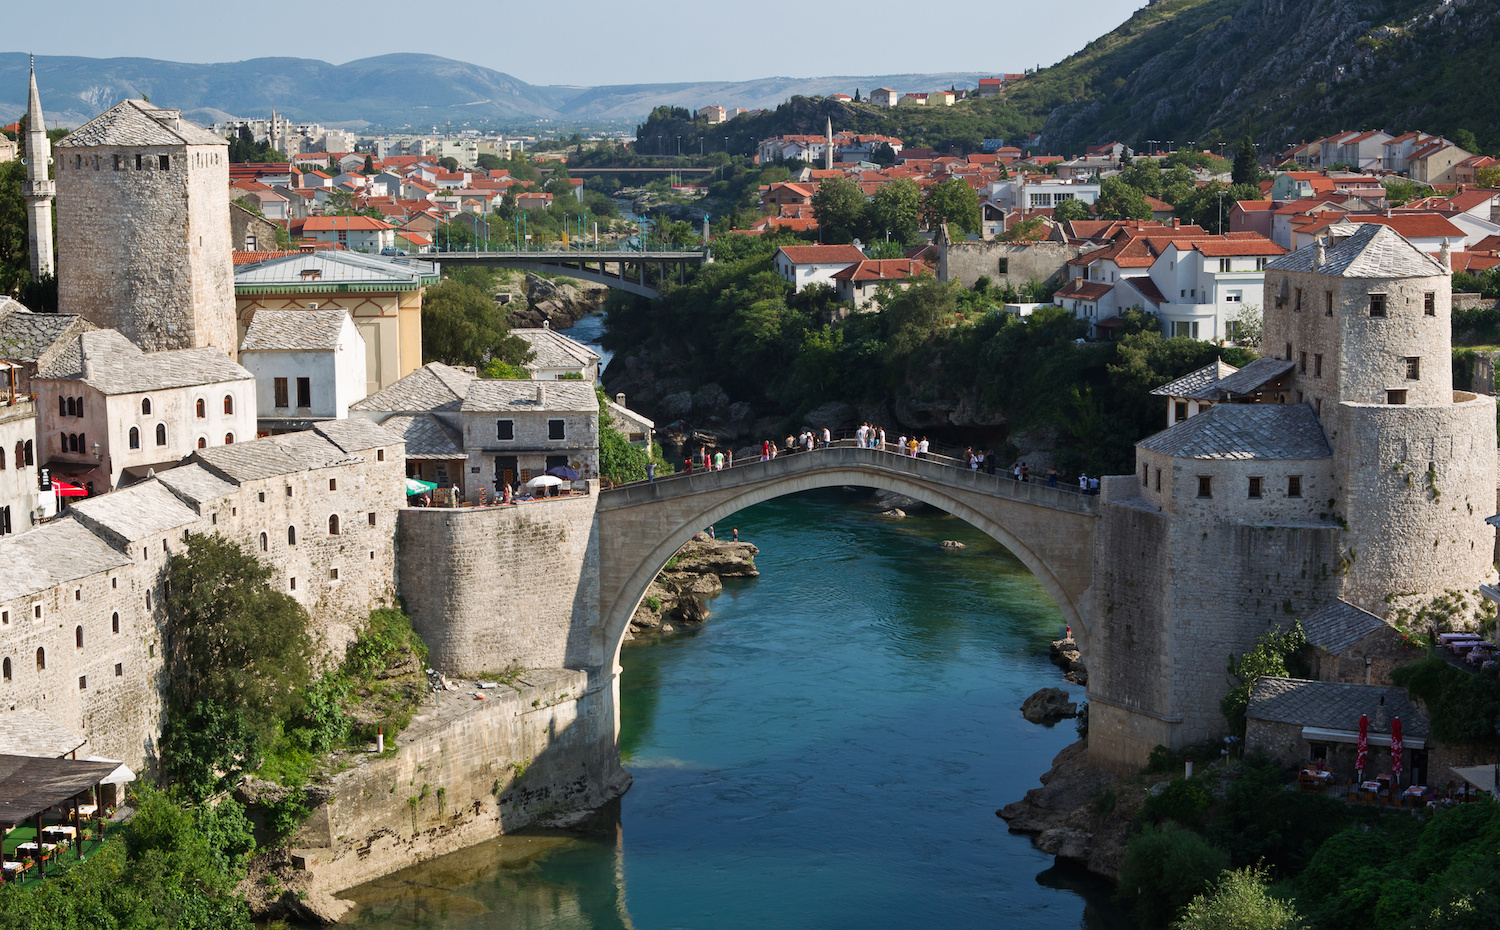 Mostar and the old town bridge